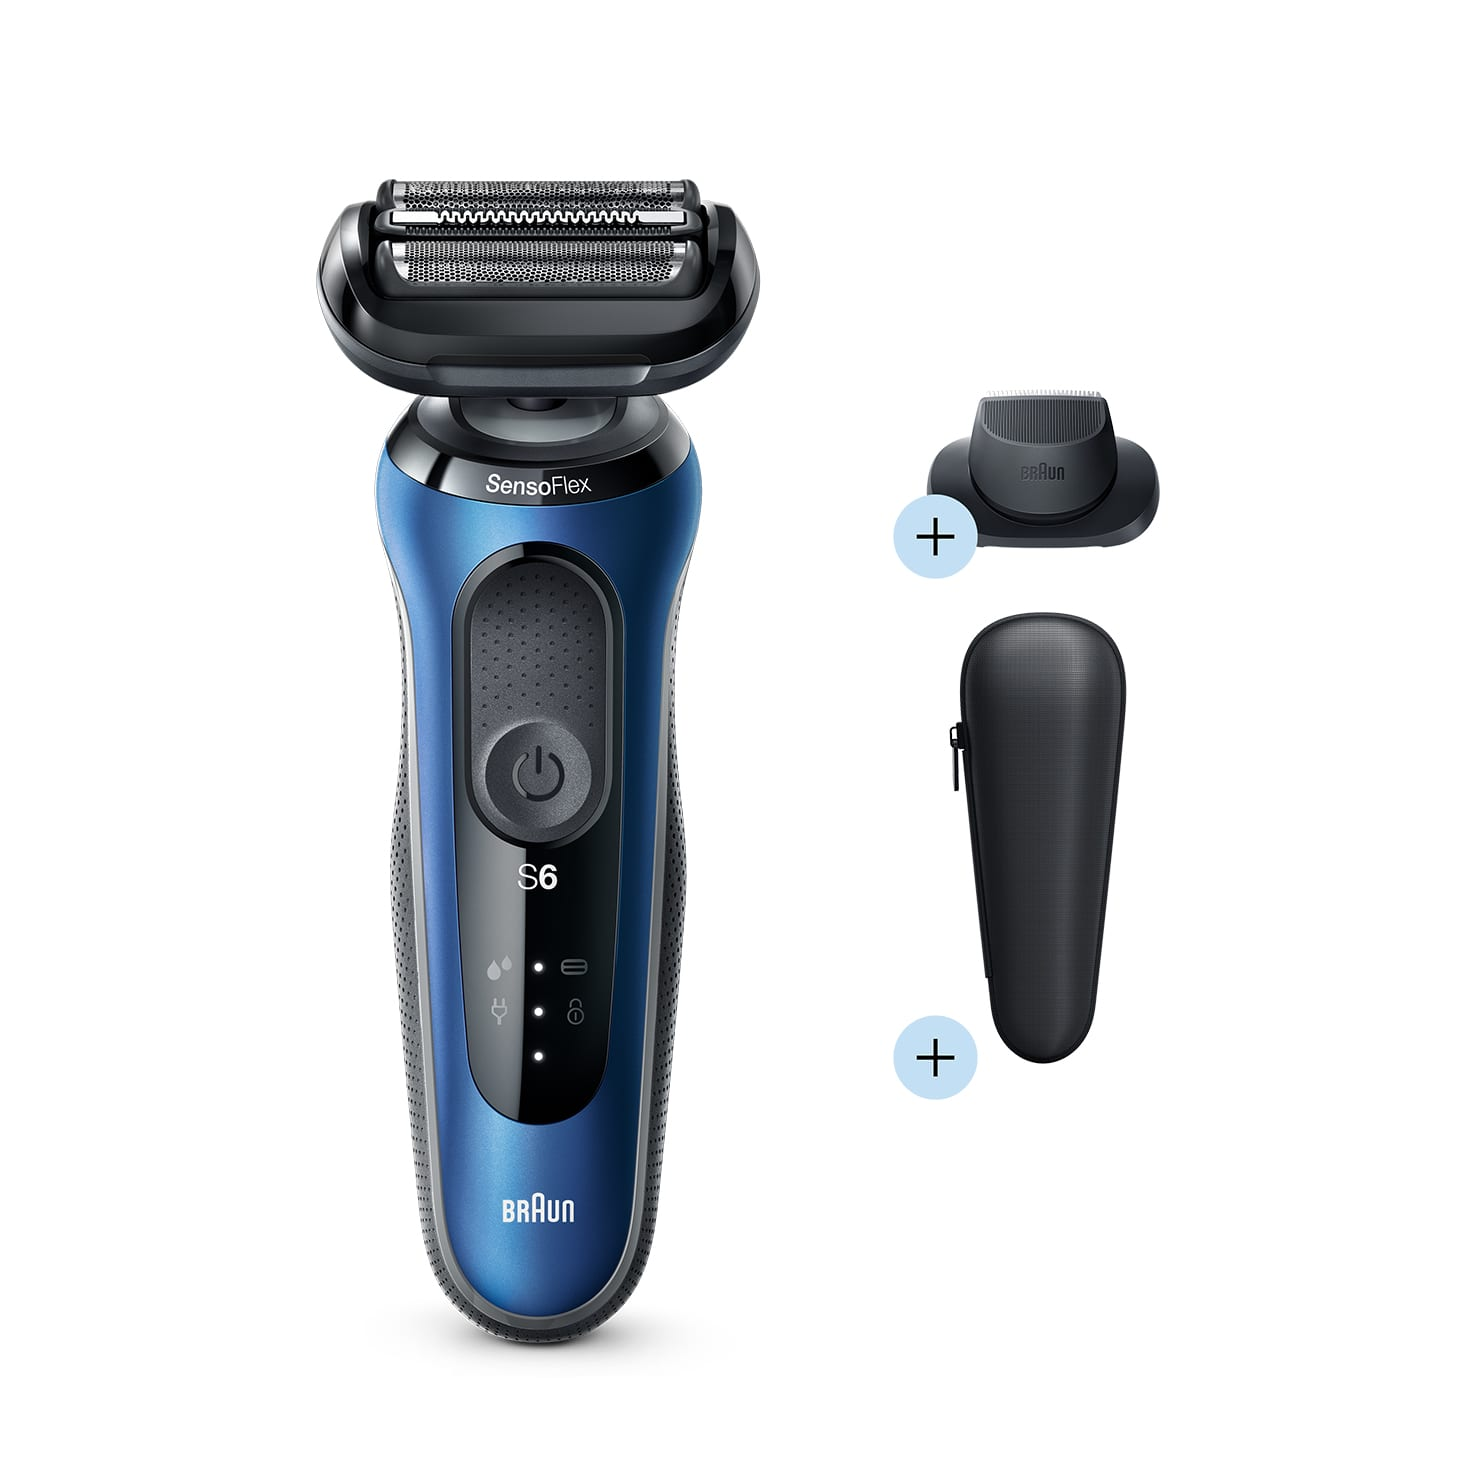 Braun Series 6 Wet & Dry Shaver Review